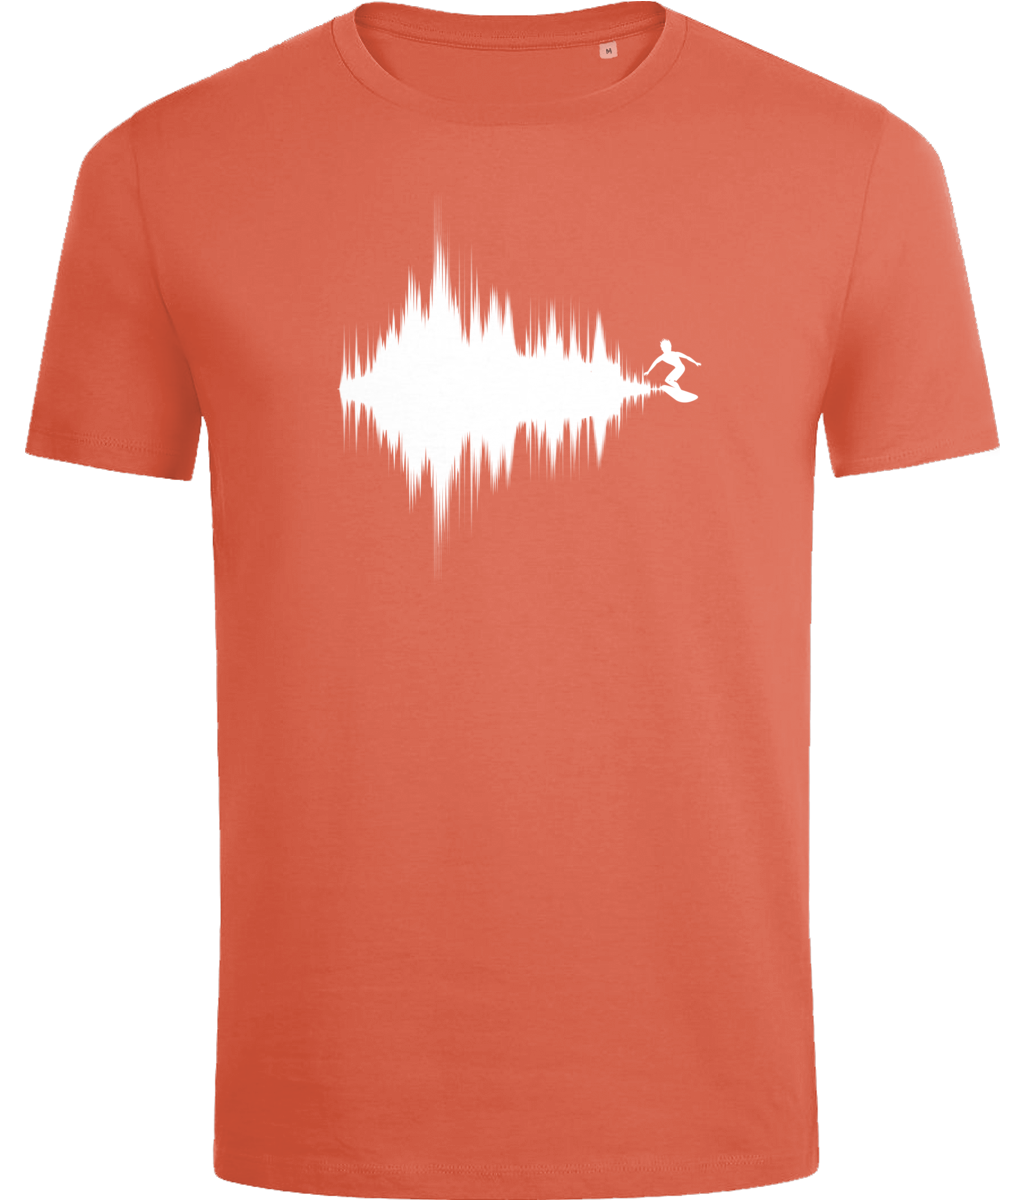 Surfing sound waves T-shirt